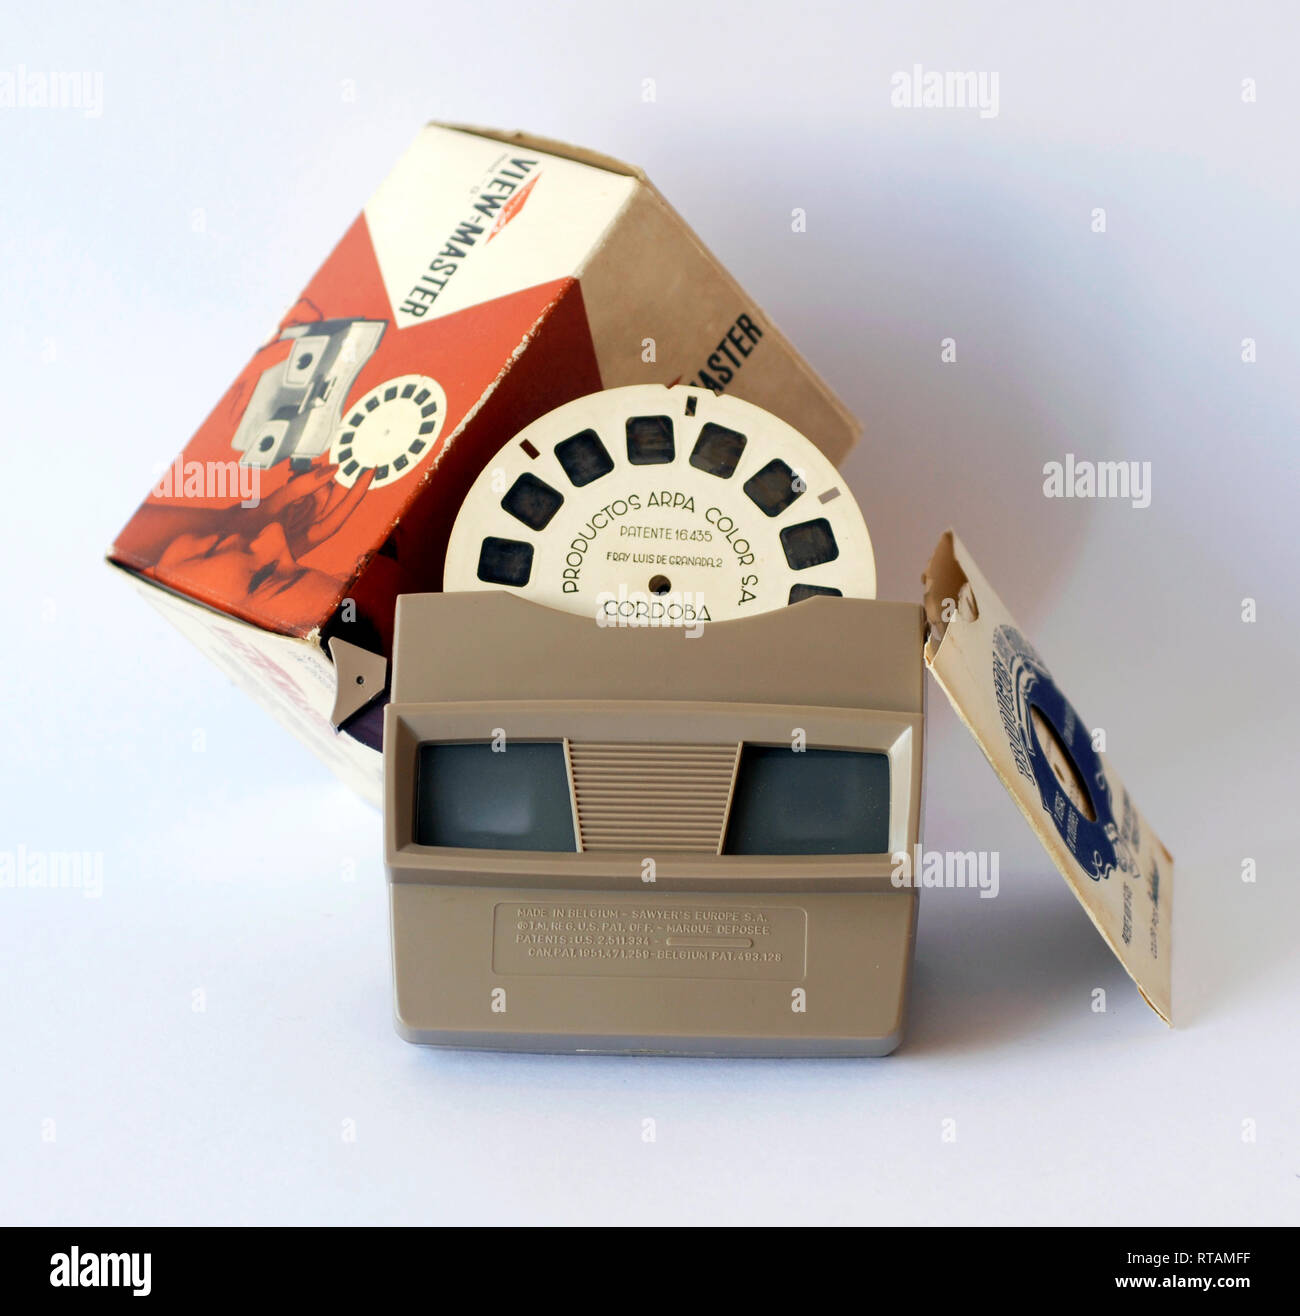 Old stereoscopic slide viewer. Brand View Master Stock Photo